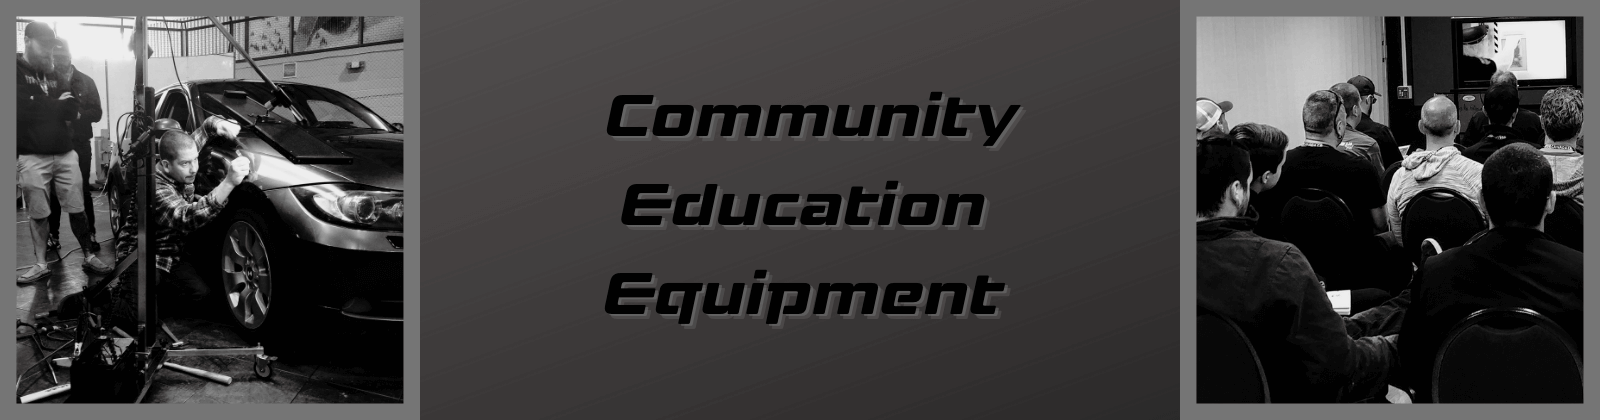 Canadentools Community Education Equipment